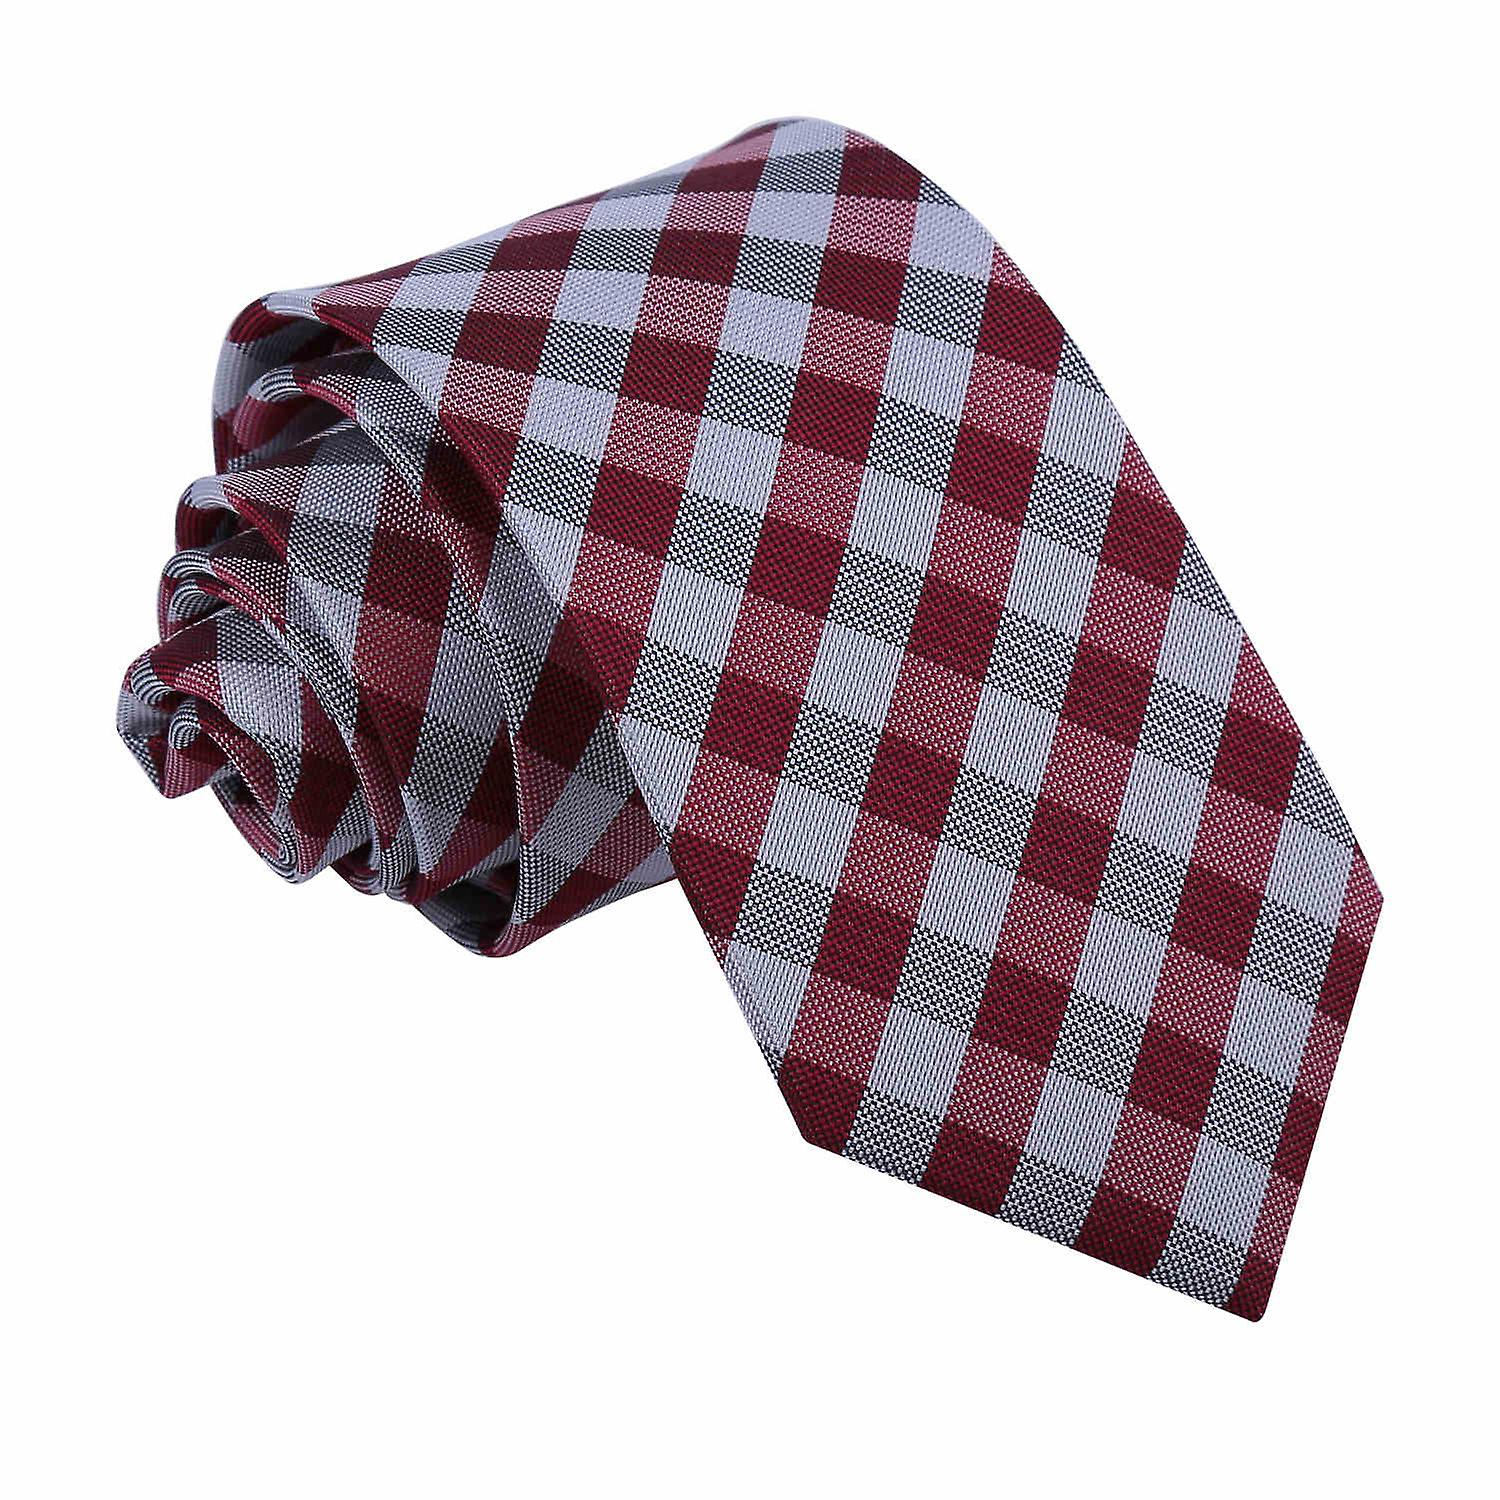 Gingham Check Dark Red Slim Tie